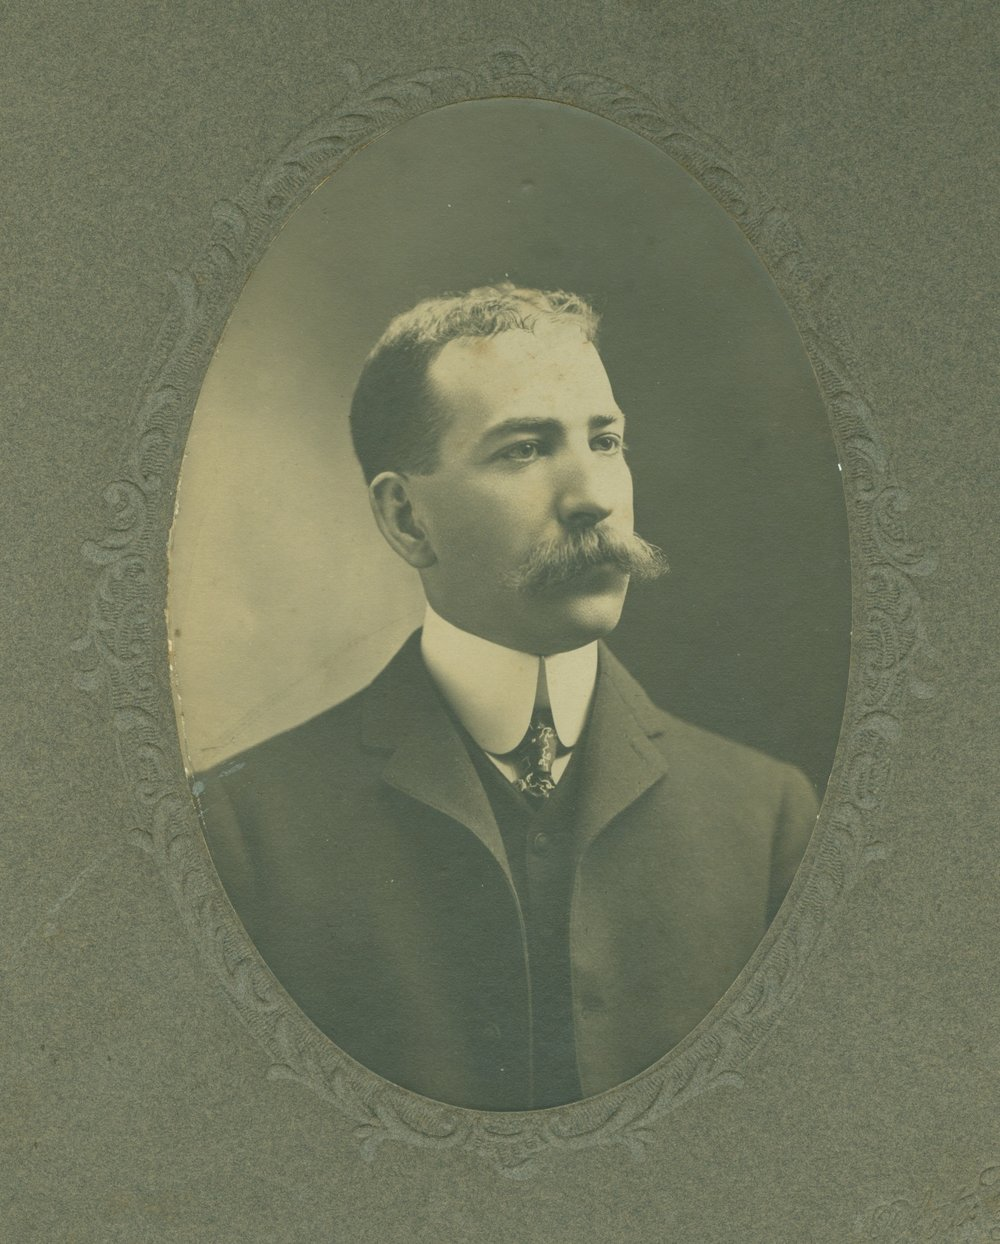 Captain O'Neil 1902